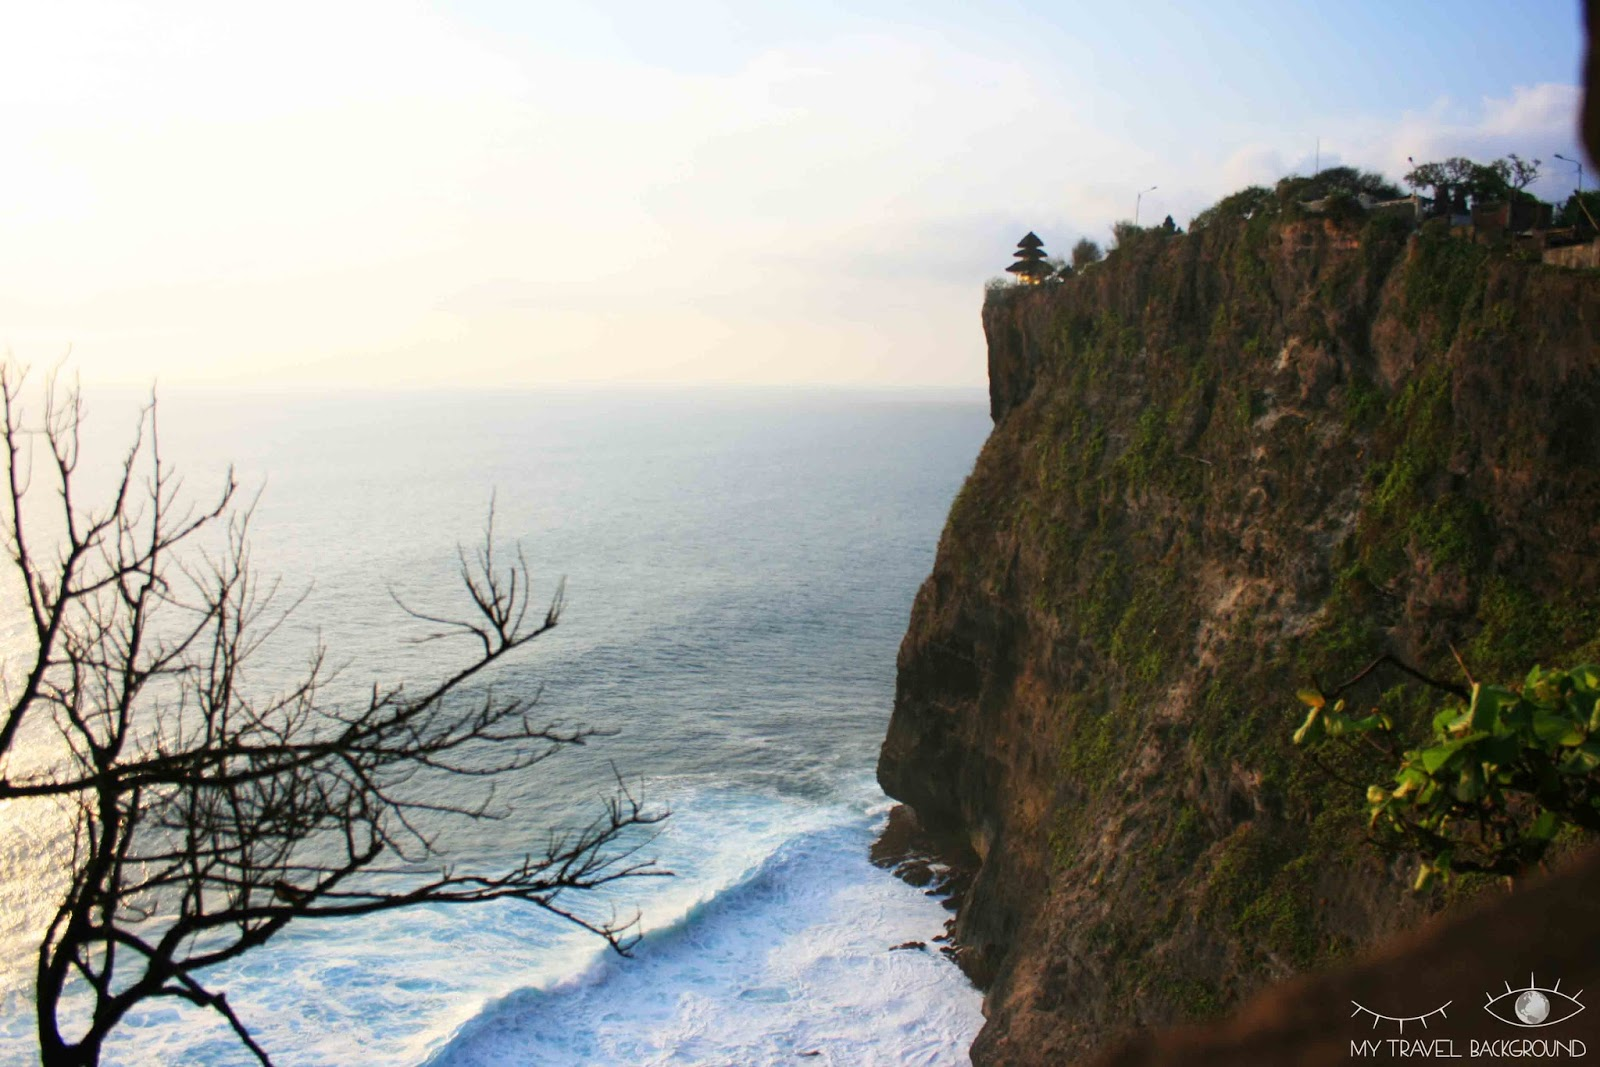 My Travel Background : A la découverte de Kuta et du Sud de Bali - Uluwatu